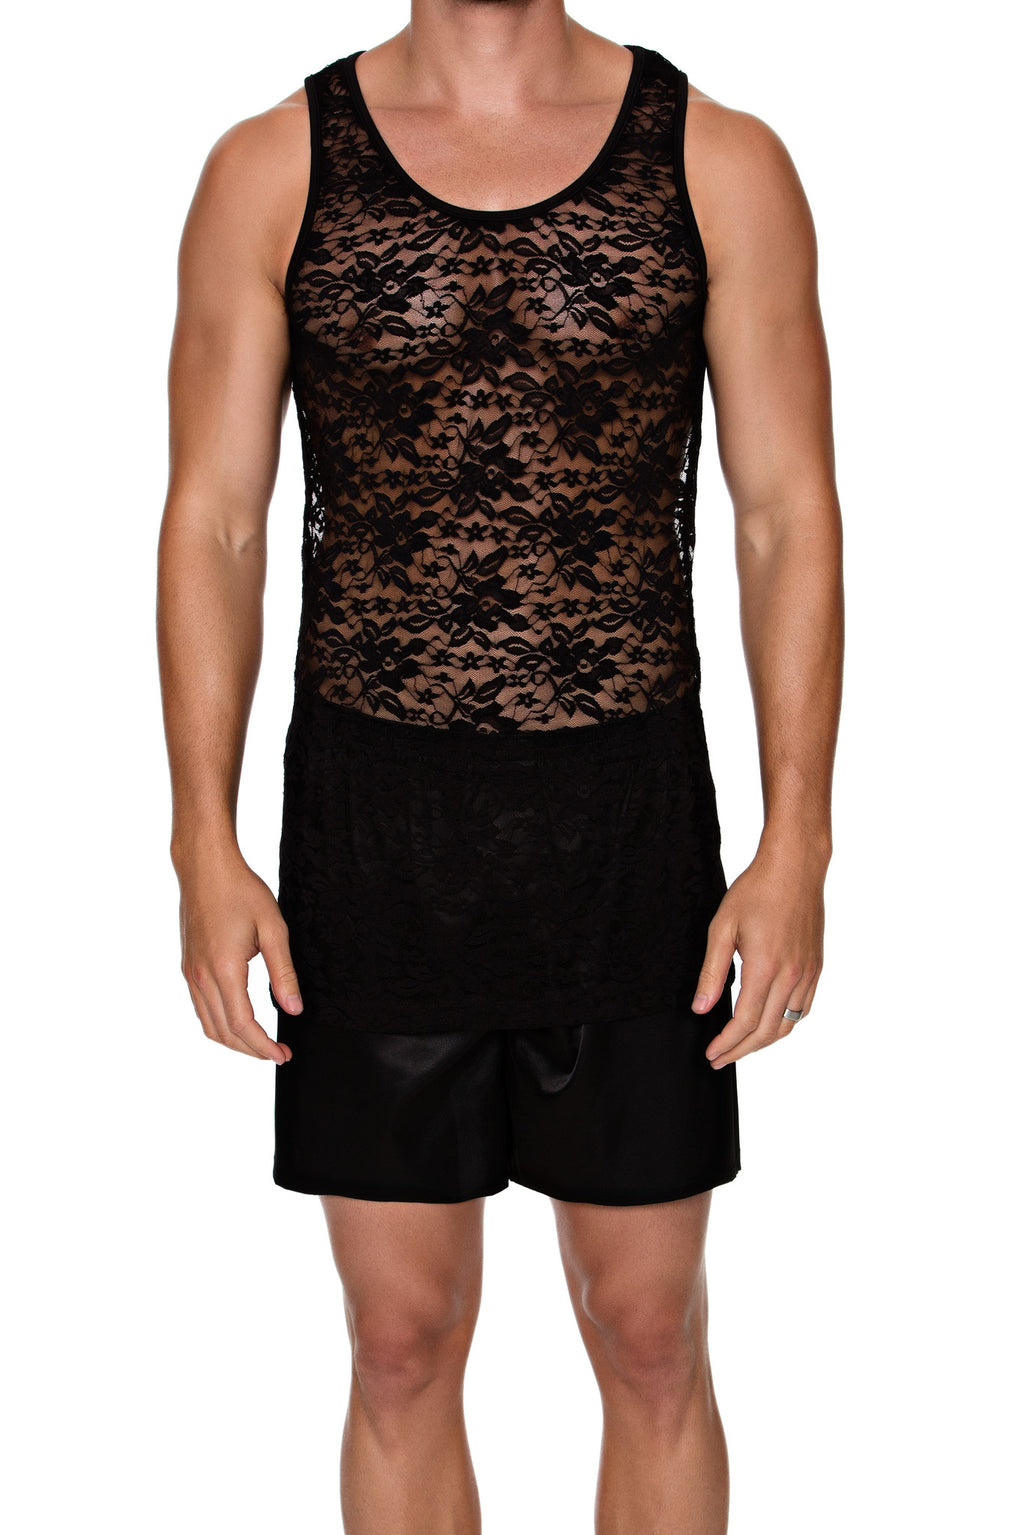 Tank - LACE - MENAGERIE Intimates MENS Lingerie